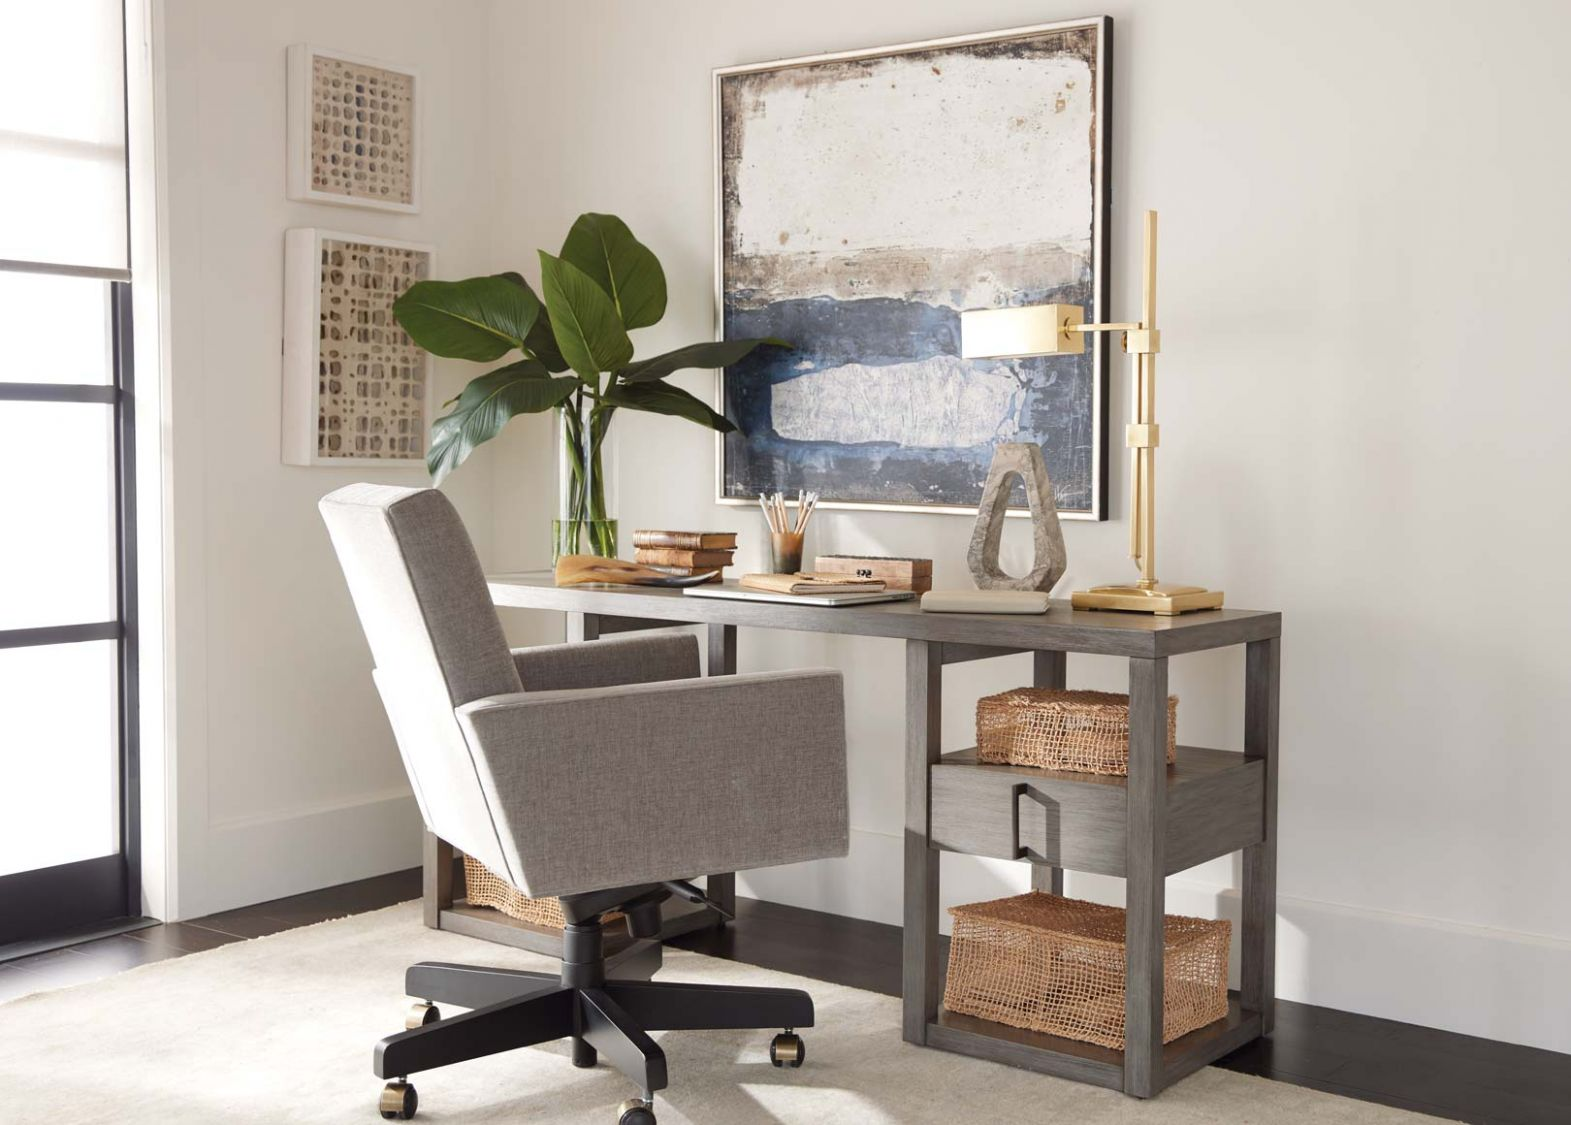 Corner Home Office, Small Space Office Ideas | Ethan Allen Design ...